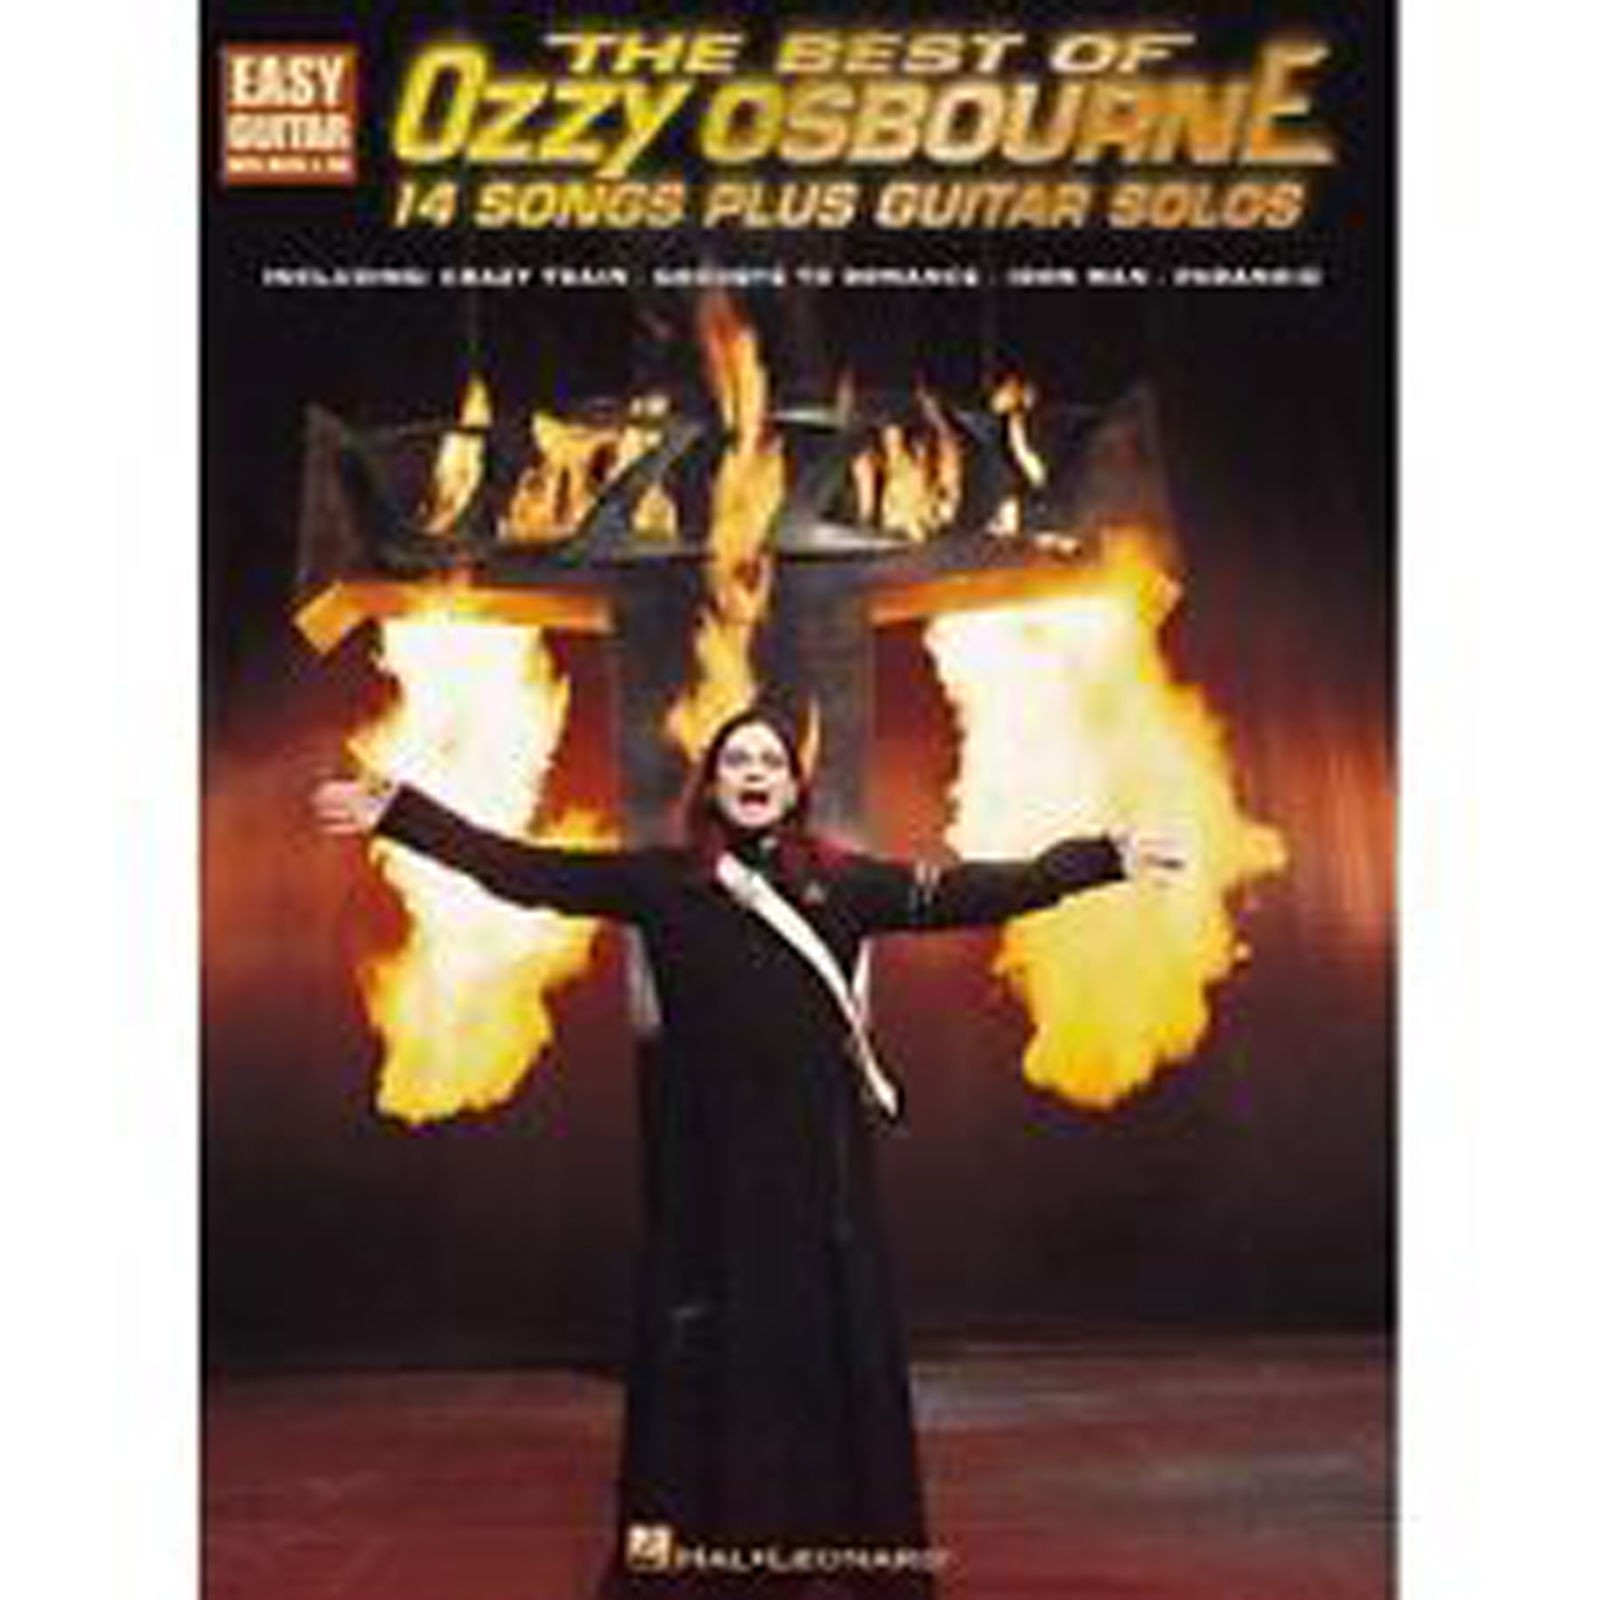 The Best of Ozzy Osbourne 14 Easy Songs Plus Guitar Solos Book B38